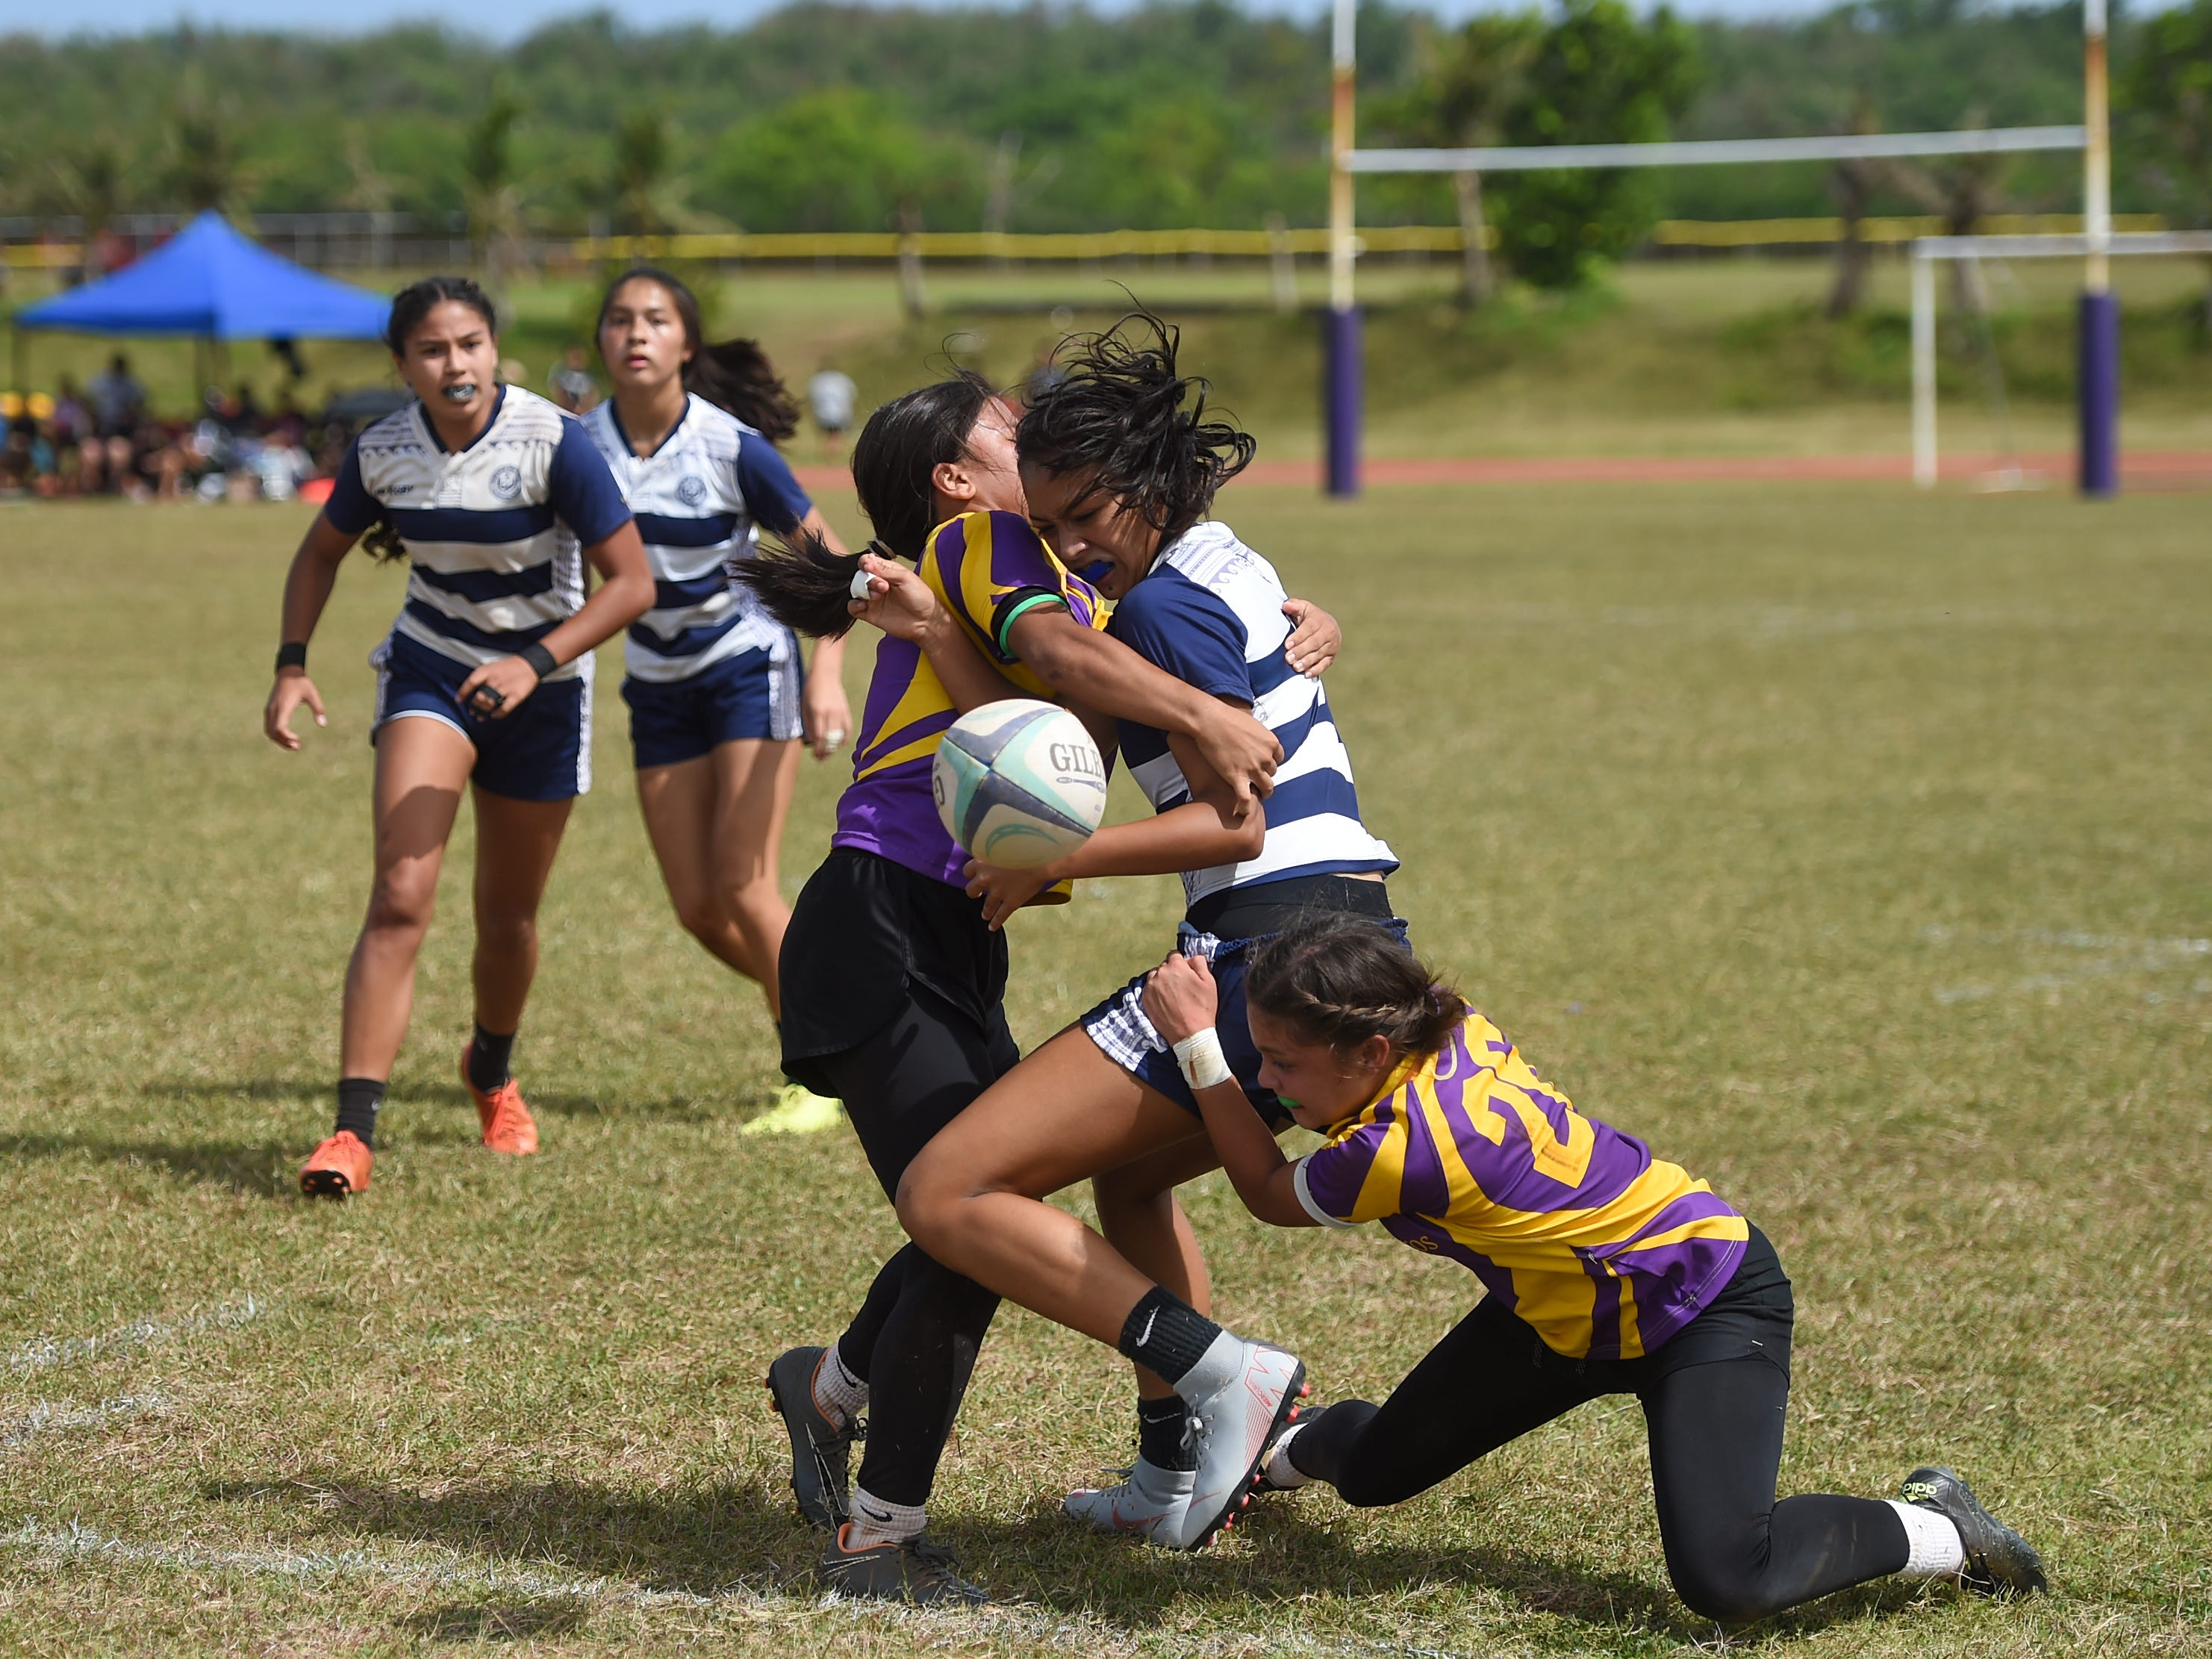 Notre Dame's Brianne Leon Guerrero is tackled by George Washington Geckos players during their GRFU/IIAAG Girls Rugby Finals game at the GW High School Field in Mangilao, March 16, 2019. The Royals went on to beat the Geckos 21-17 for the rugby title.